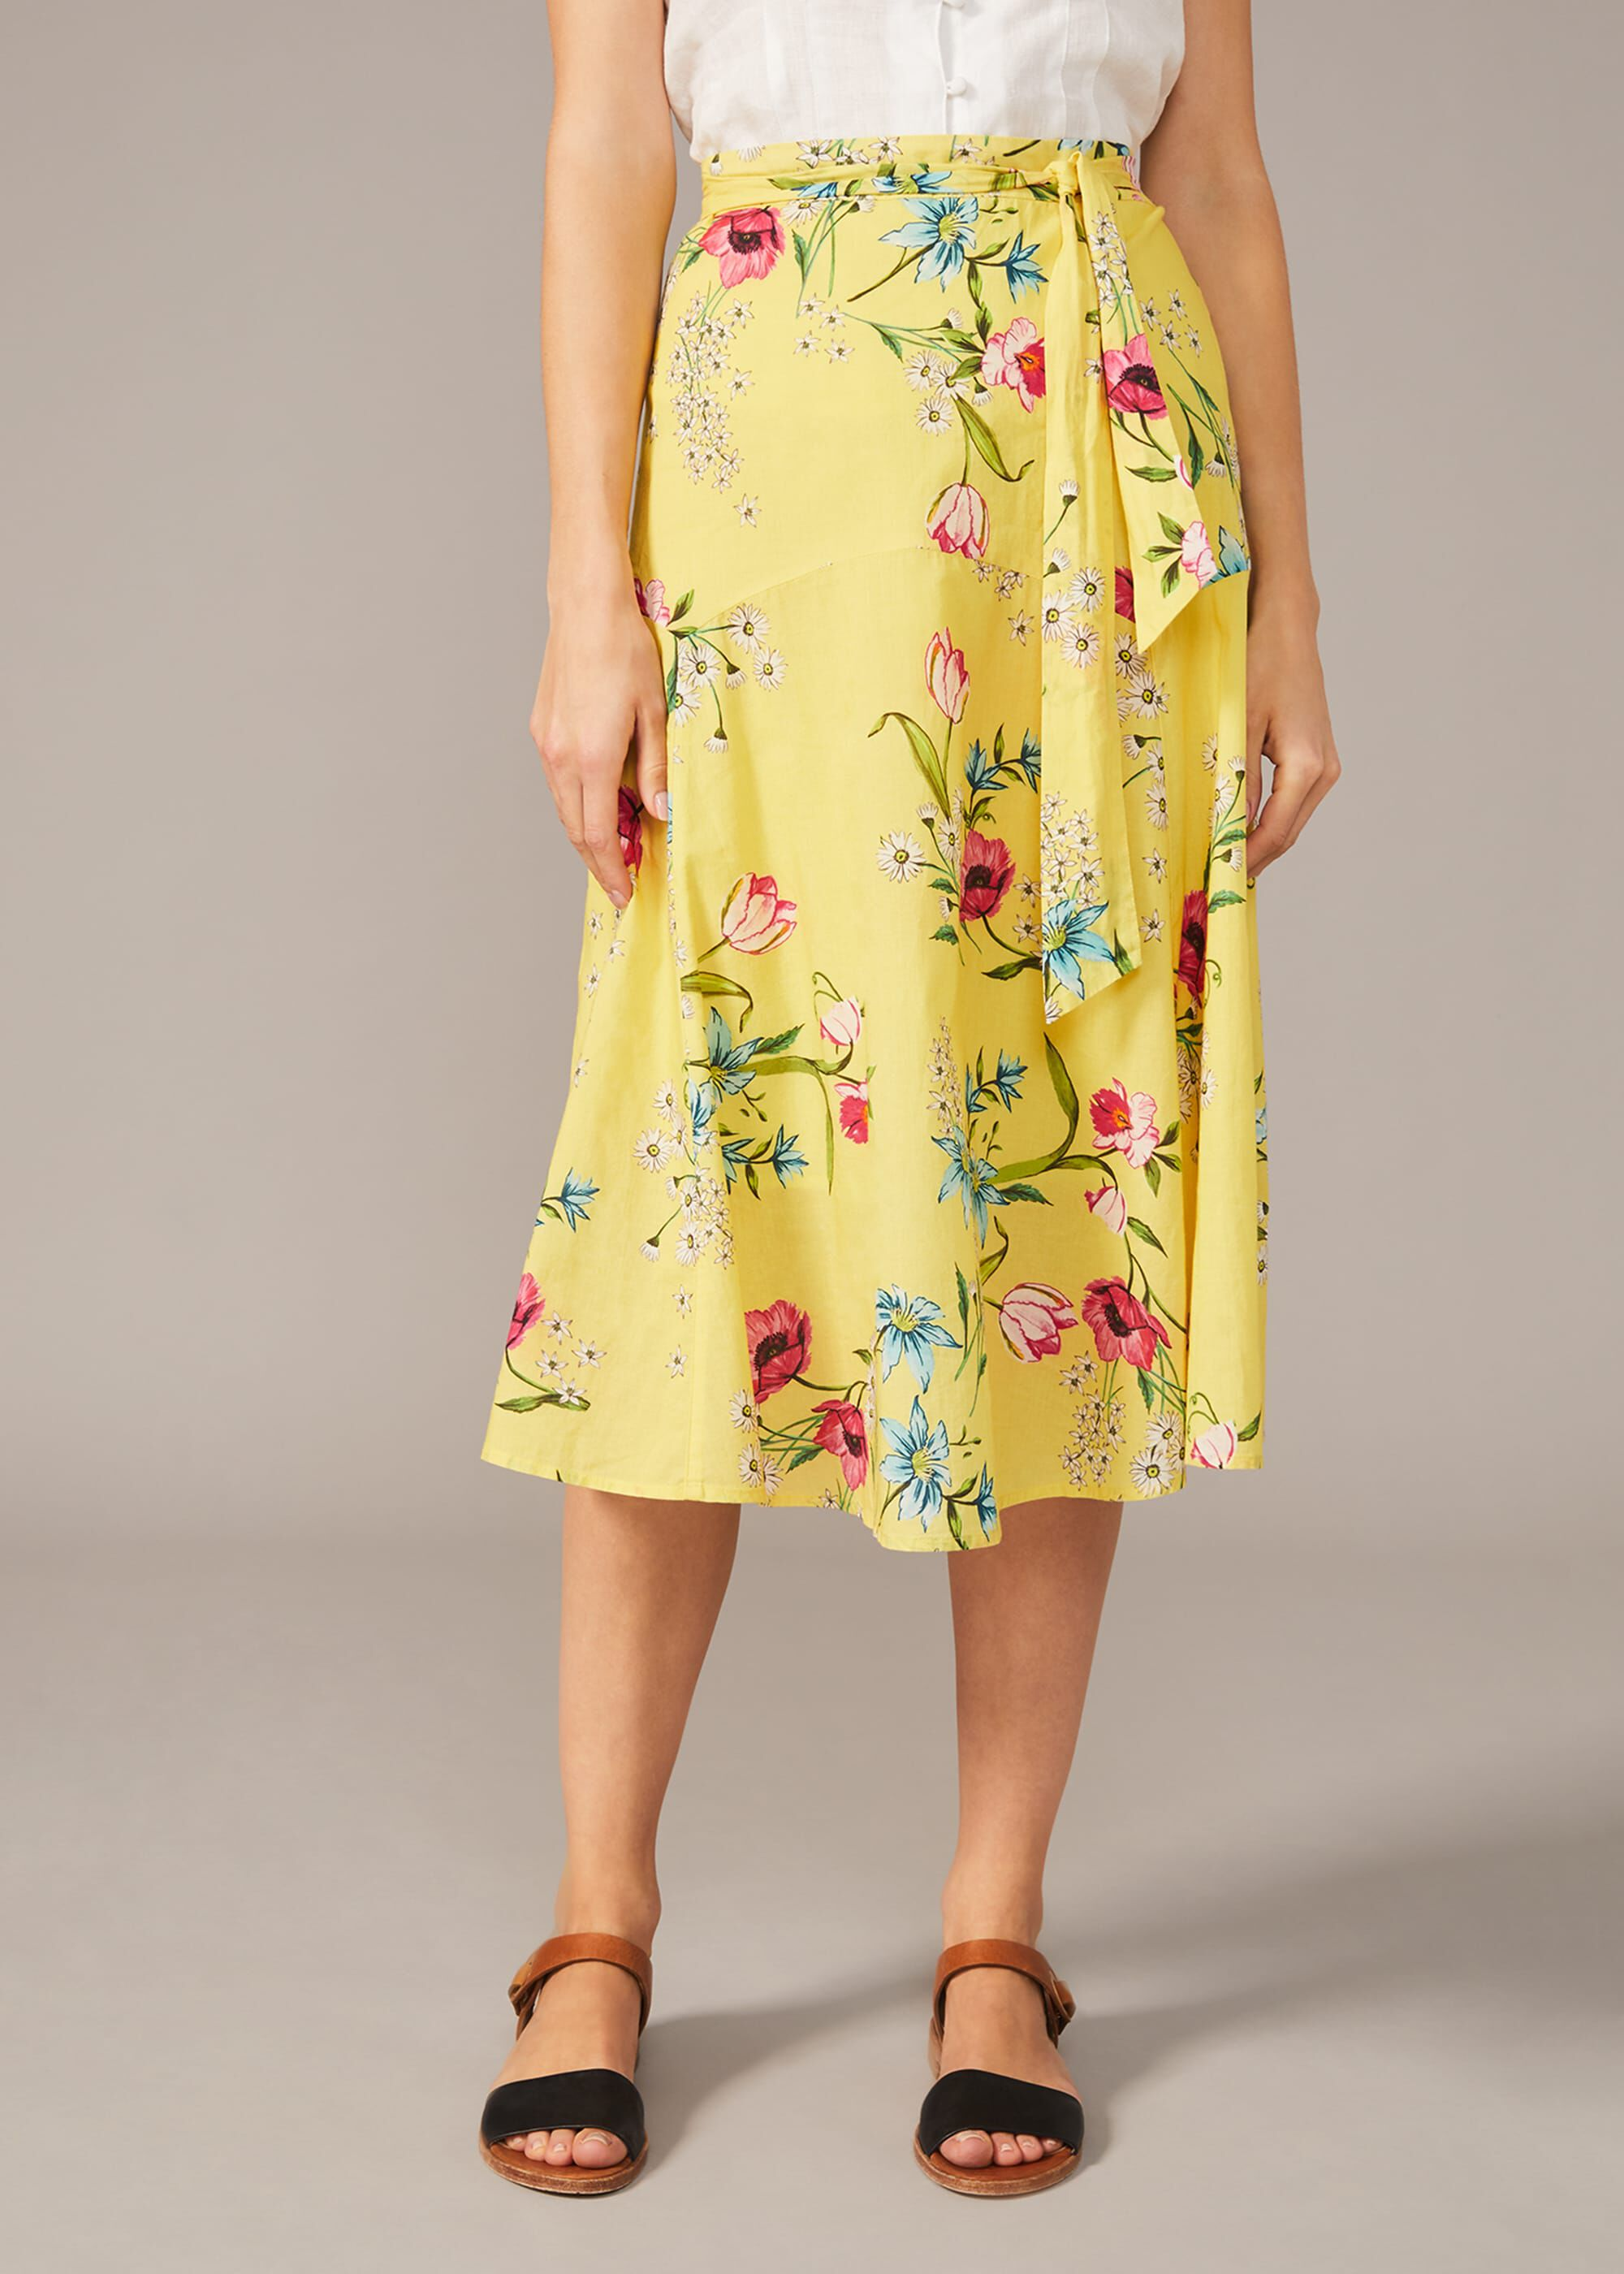 Phase Eight Louma Floral Cotton Midi Skirt, Yellow, Regular Skirt